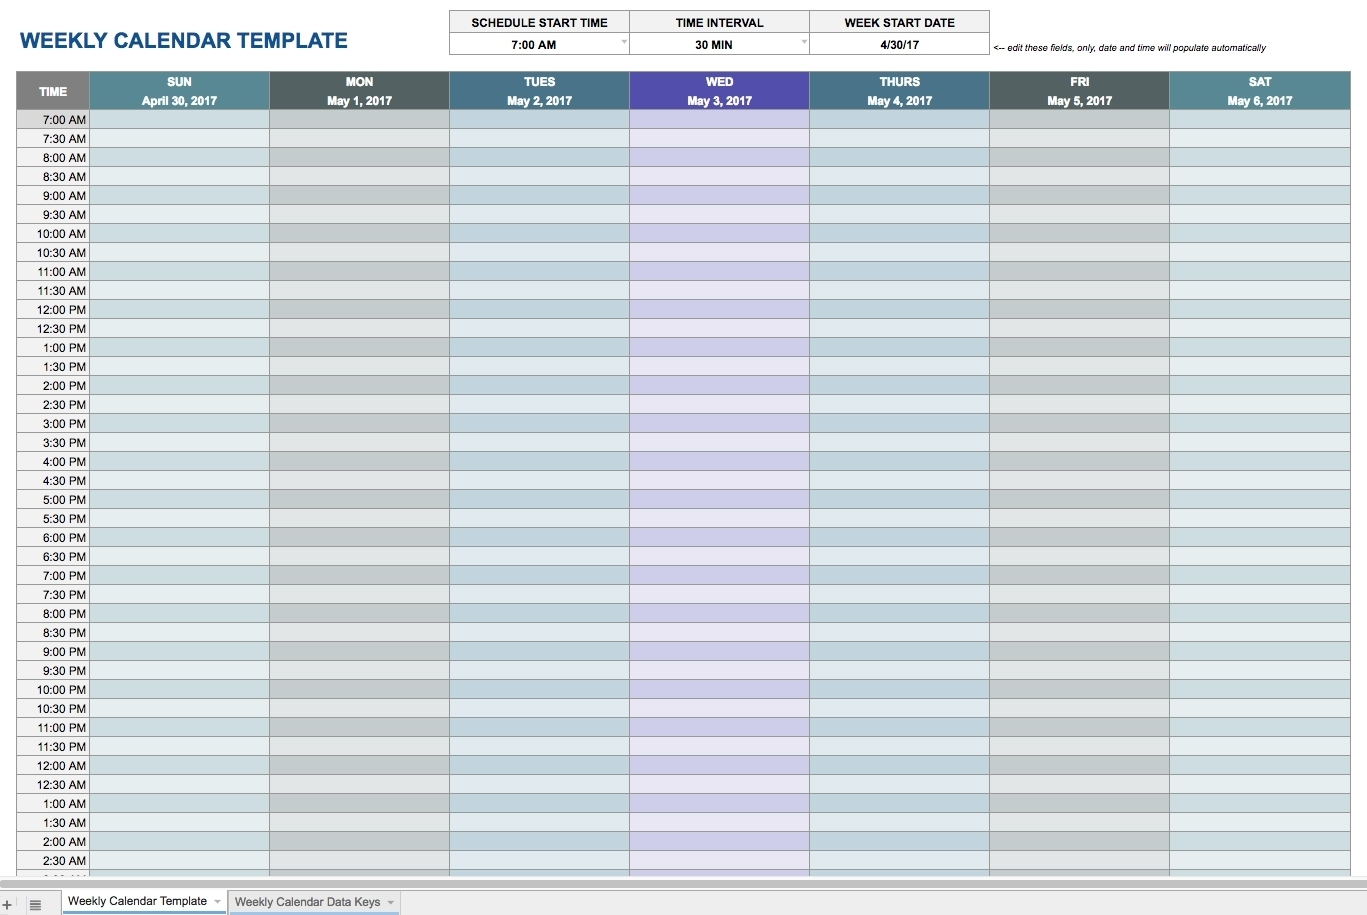 Printable Ly Appointment Calendar Schedule Template Time Slot Hourly regarding Schedule With 15 Minate Time Slots